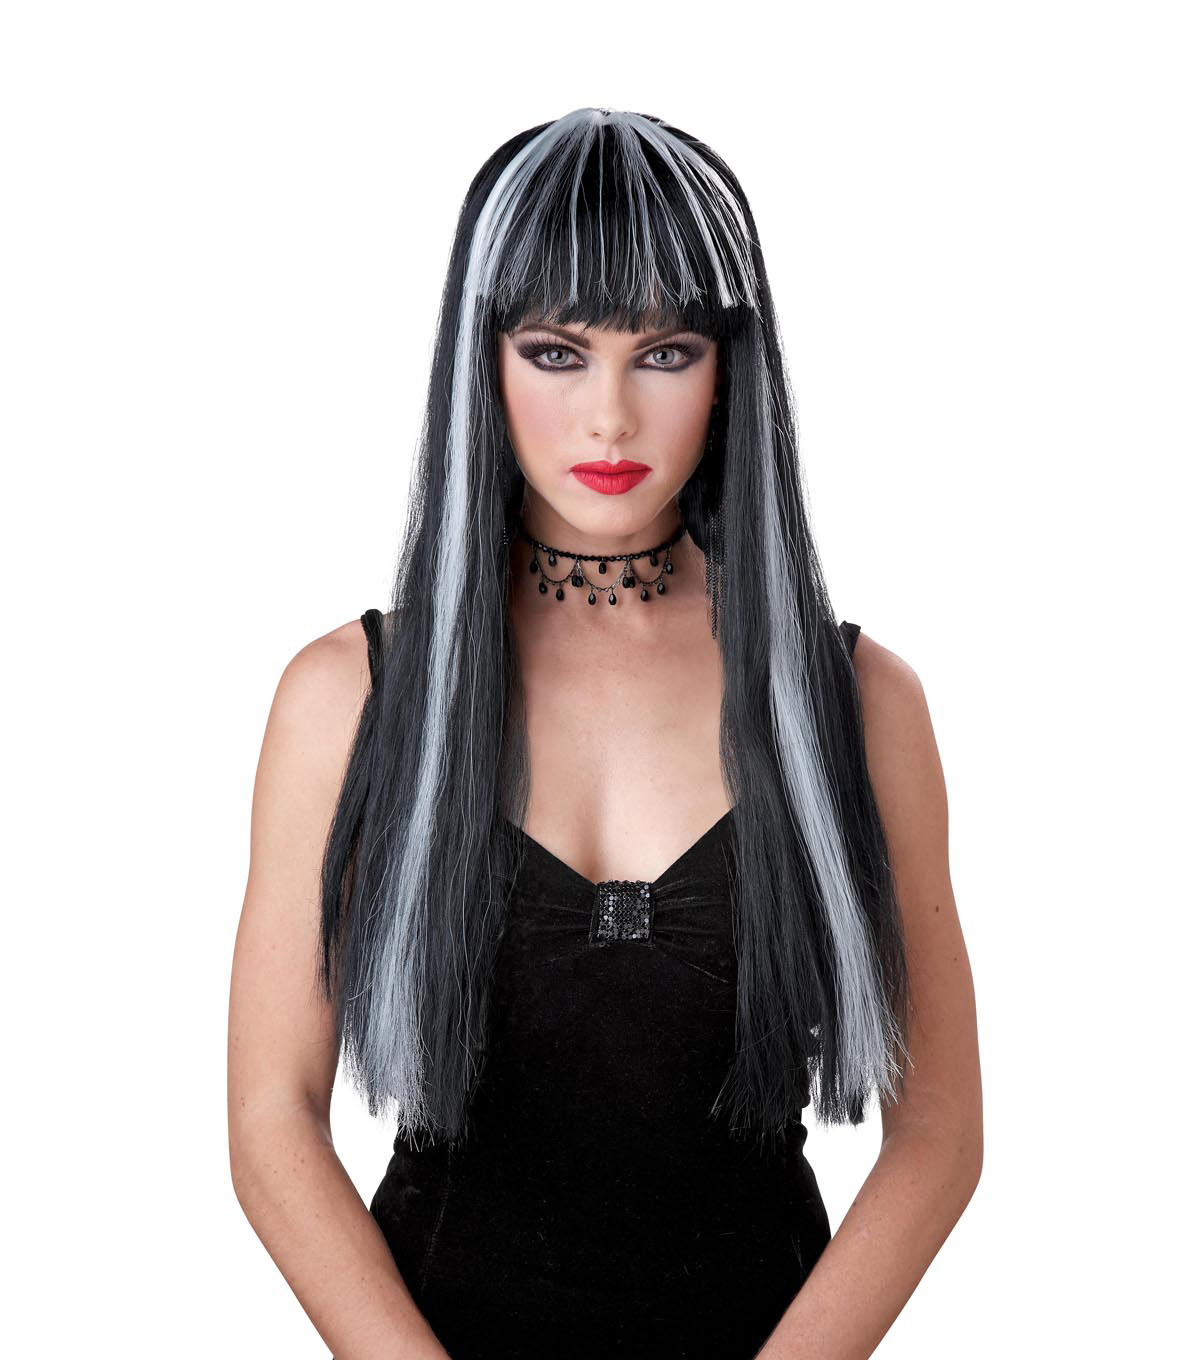 Maker's Halloween 24'' Morticia Wig with Bangs-Black & White Stripe